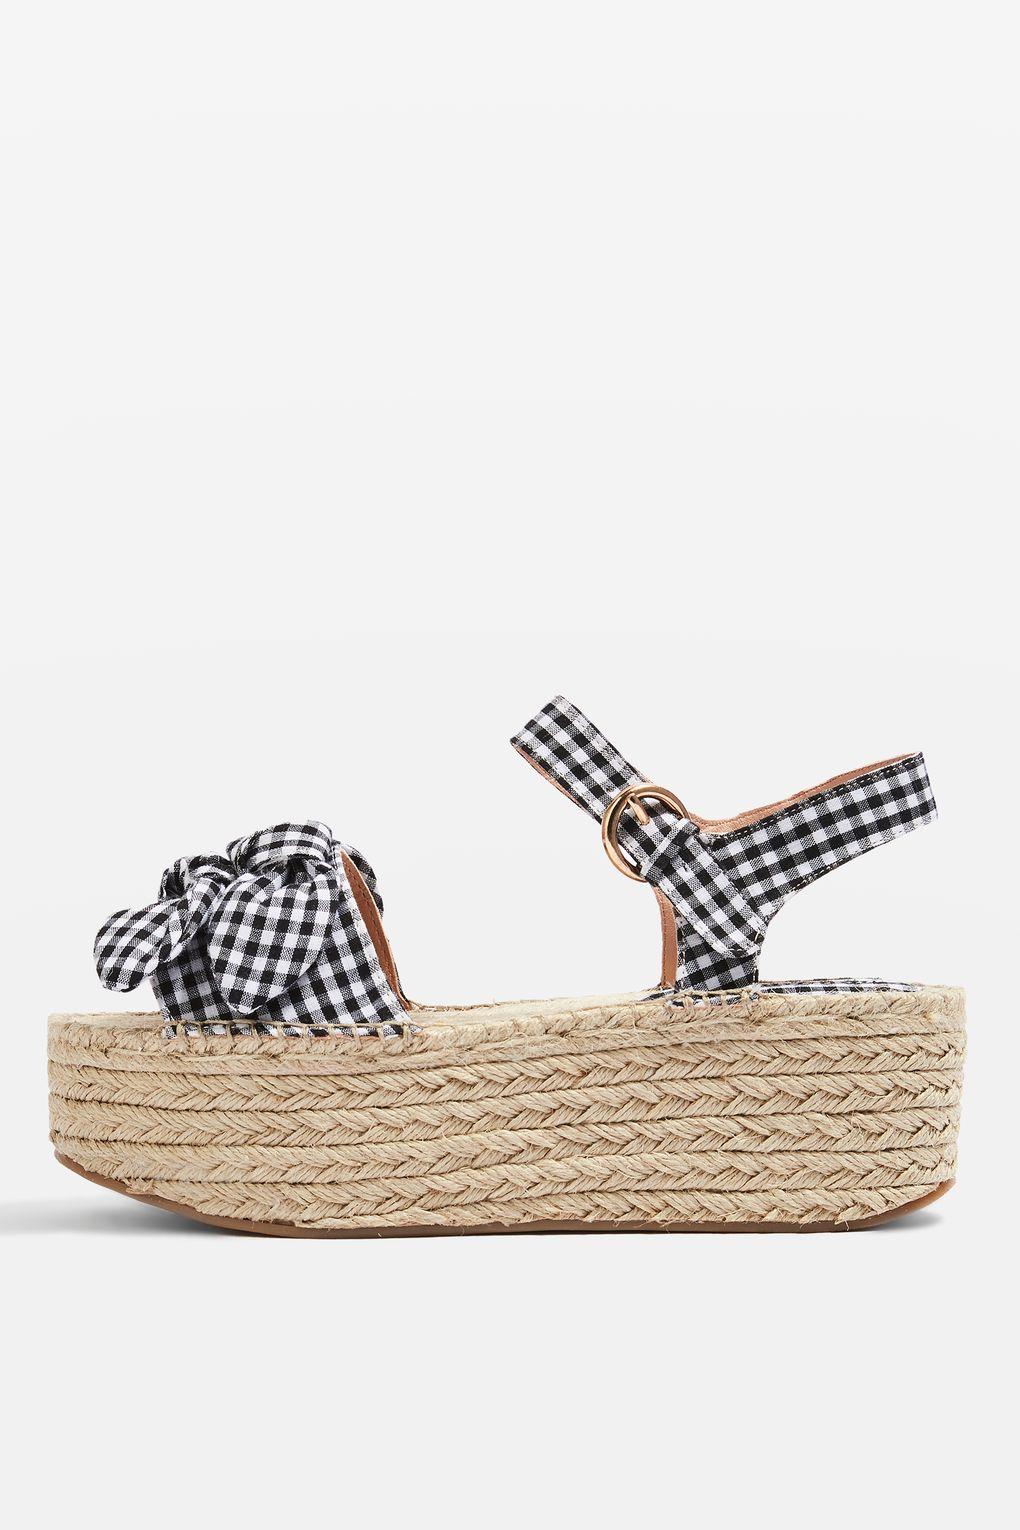 These gingham platform sandals need to make their way into your closet! | www.ashleybrookdesigns.com